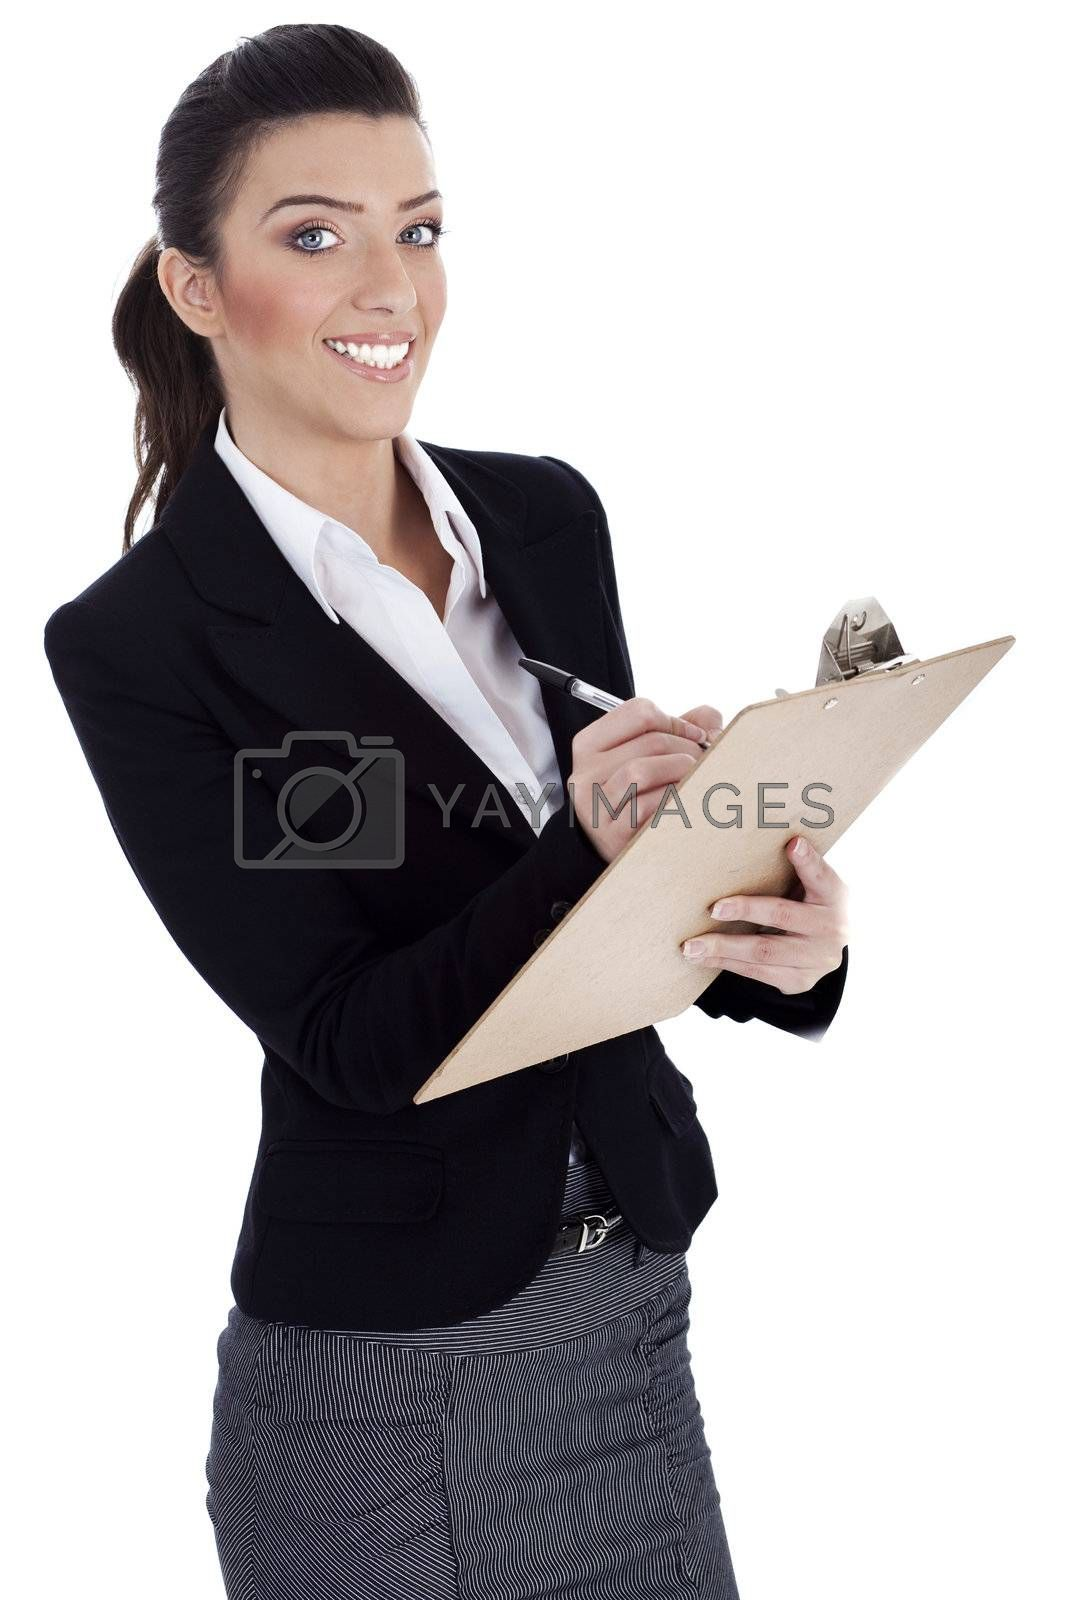 Royalty free image of Business professional writes on pad by get4net